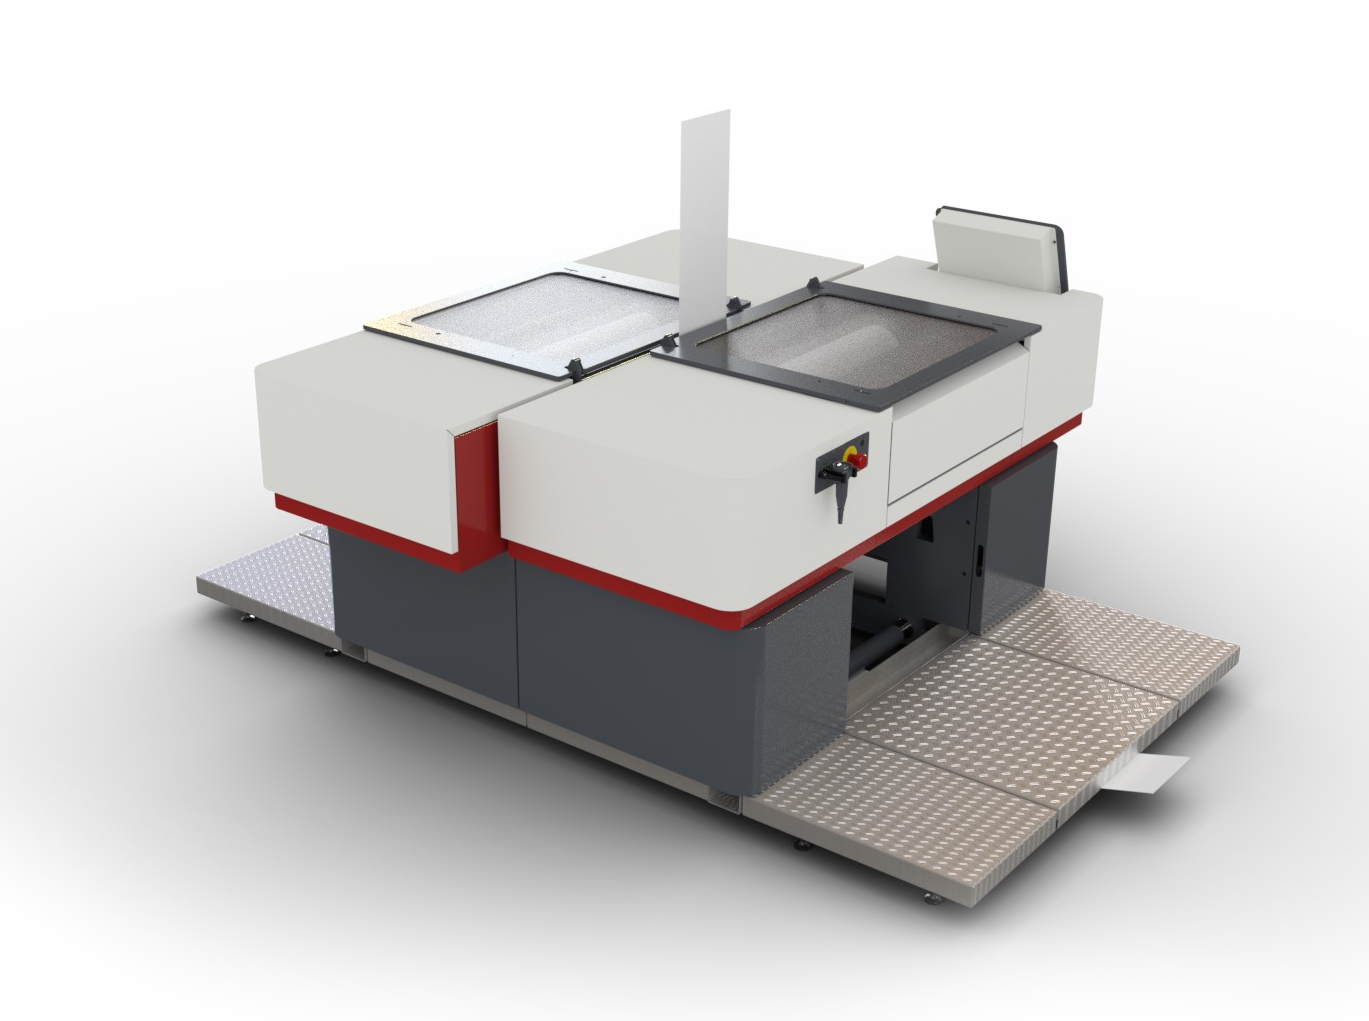 The new Contiweb Variable Coater